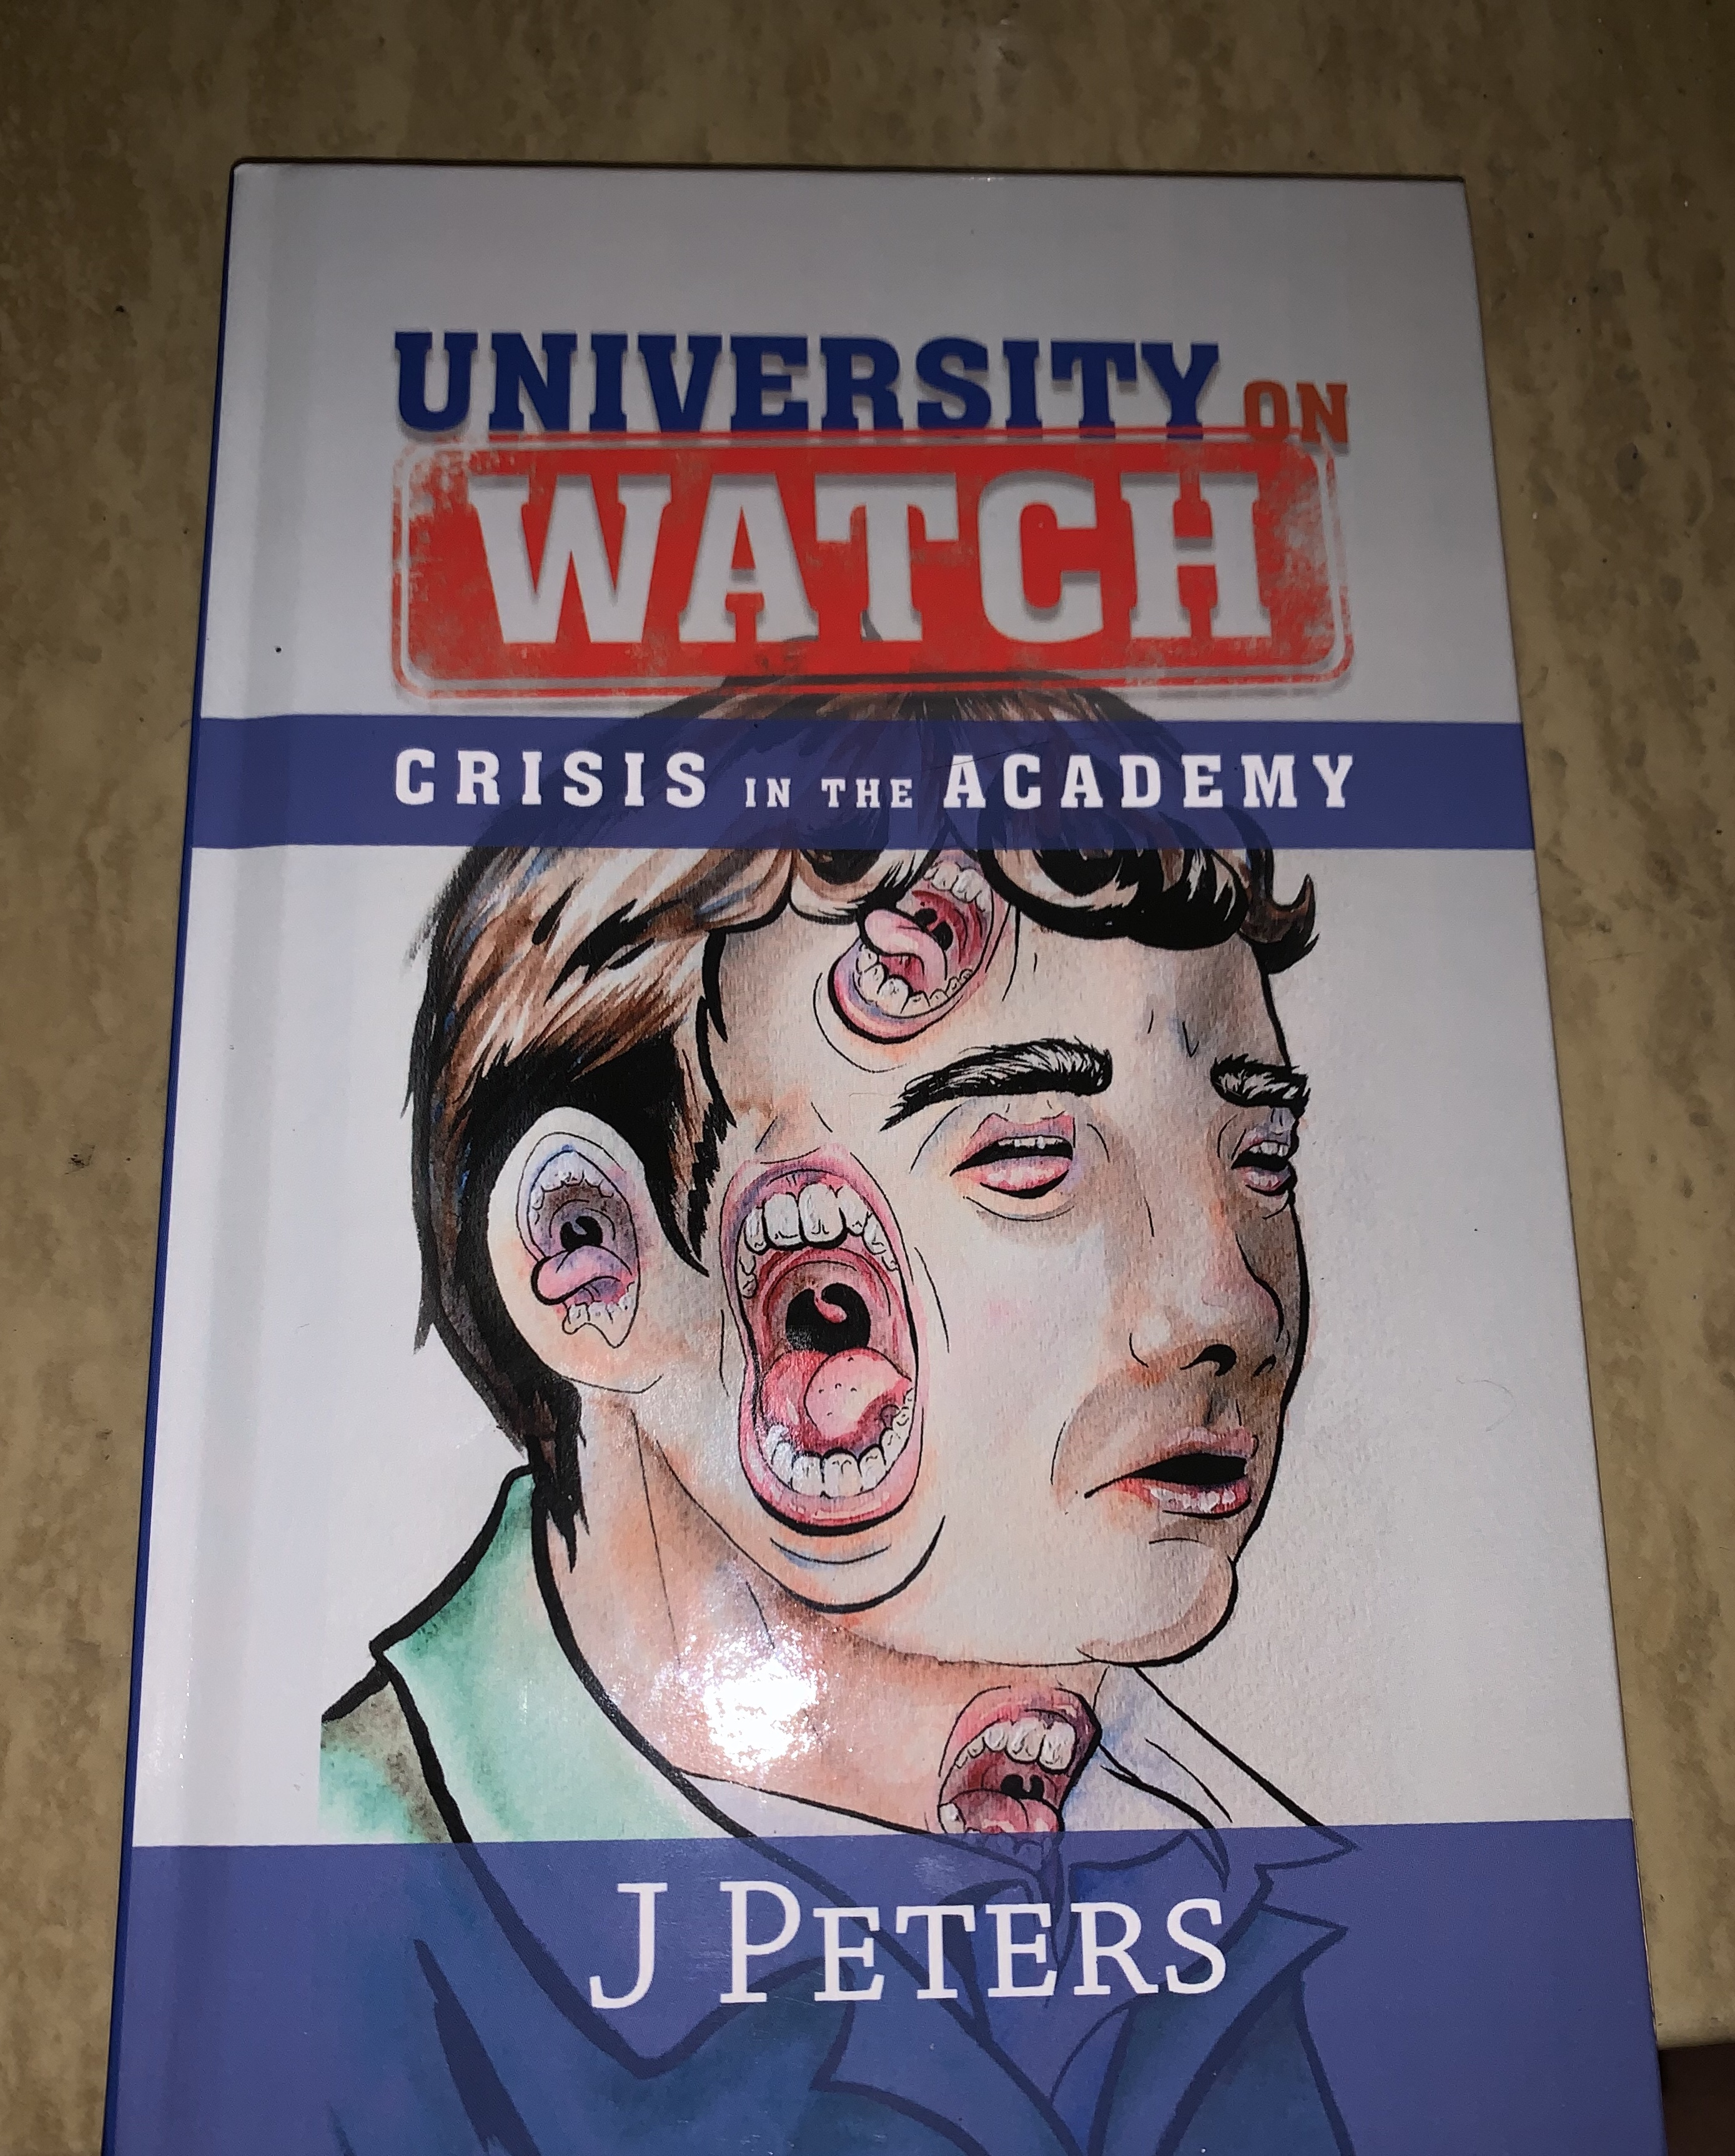 """New """"Lost Chapter"""" Chapter of University on Watch: Register Co-sign Arrest"""